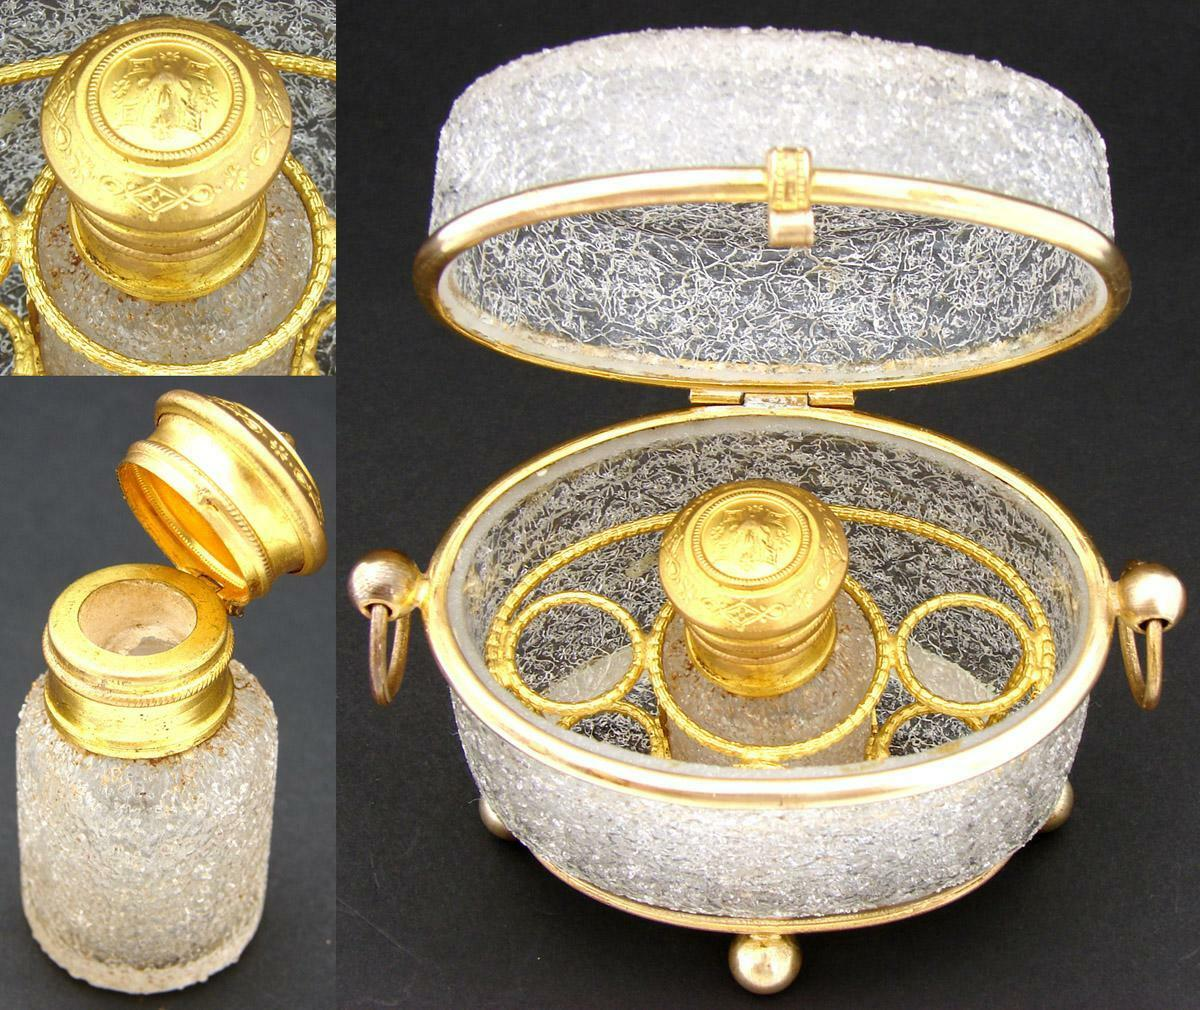 Antique French Scent Caddy, Casket in Crackle or Overshot Glass, Perfume Bottle